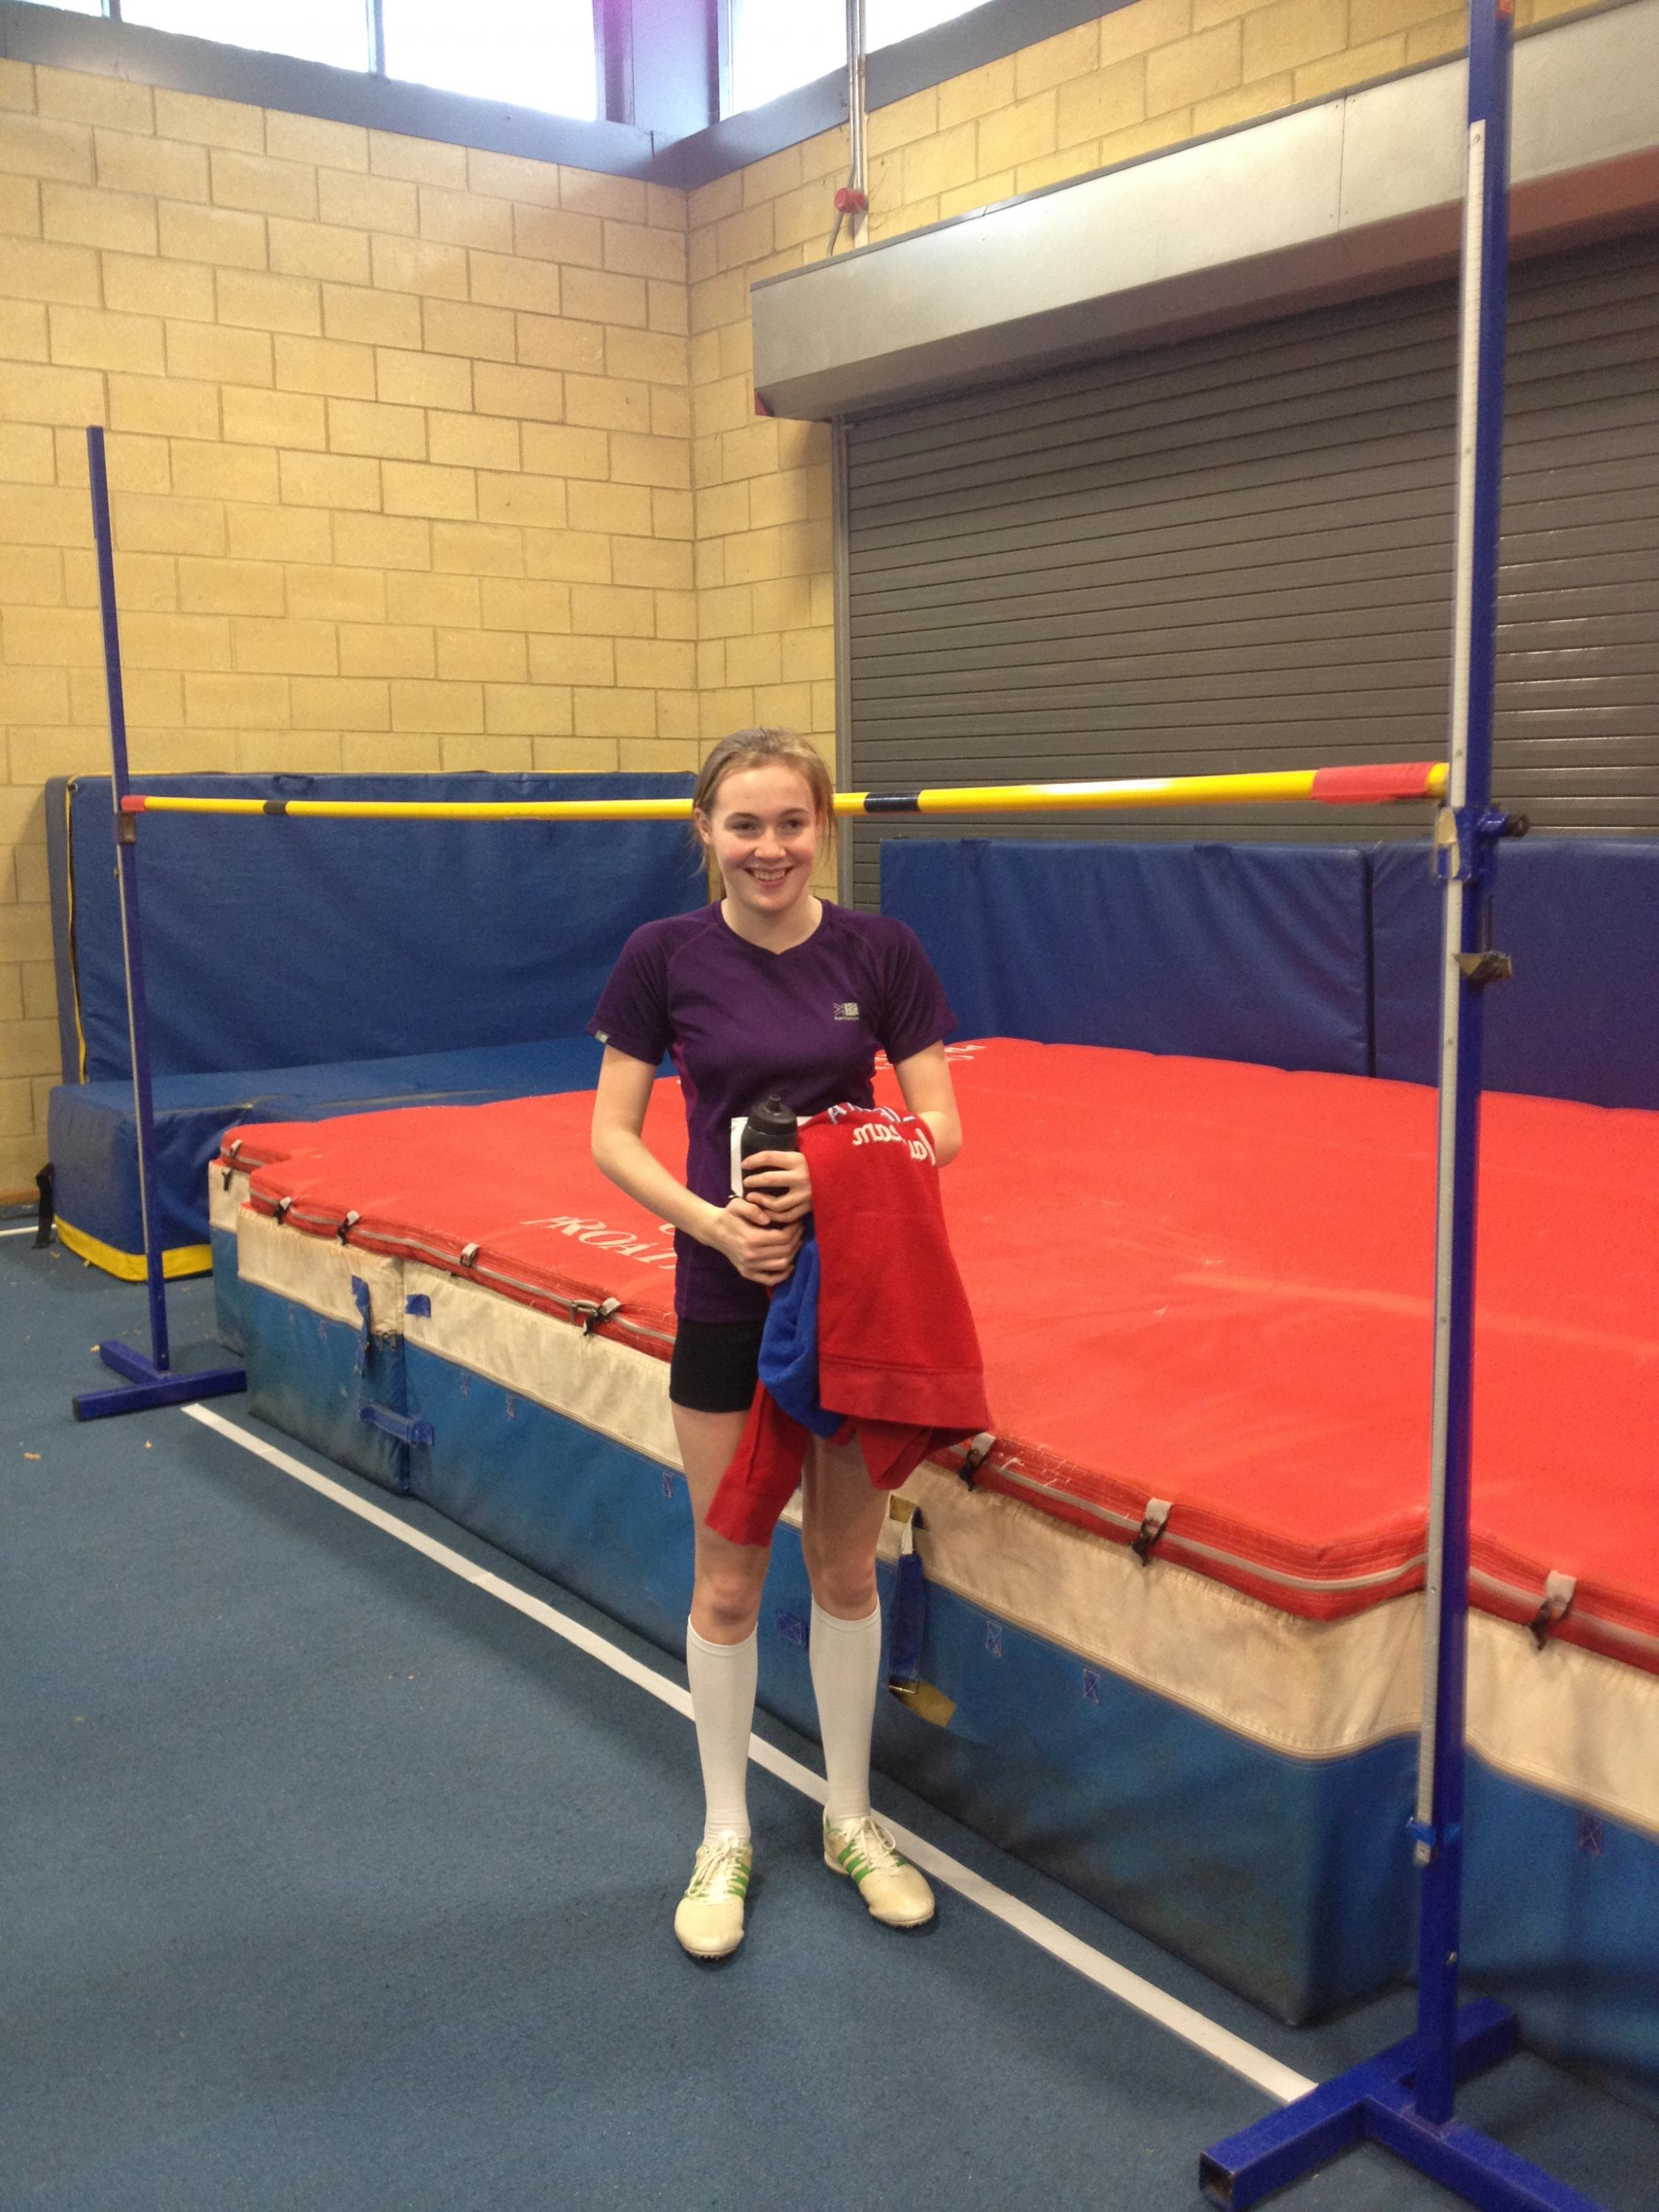 ATHLETICS: Penfold recorded a personal best in the 70m hurdles on Saturday.